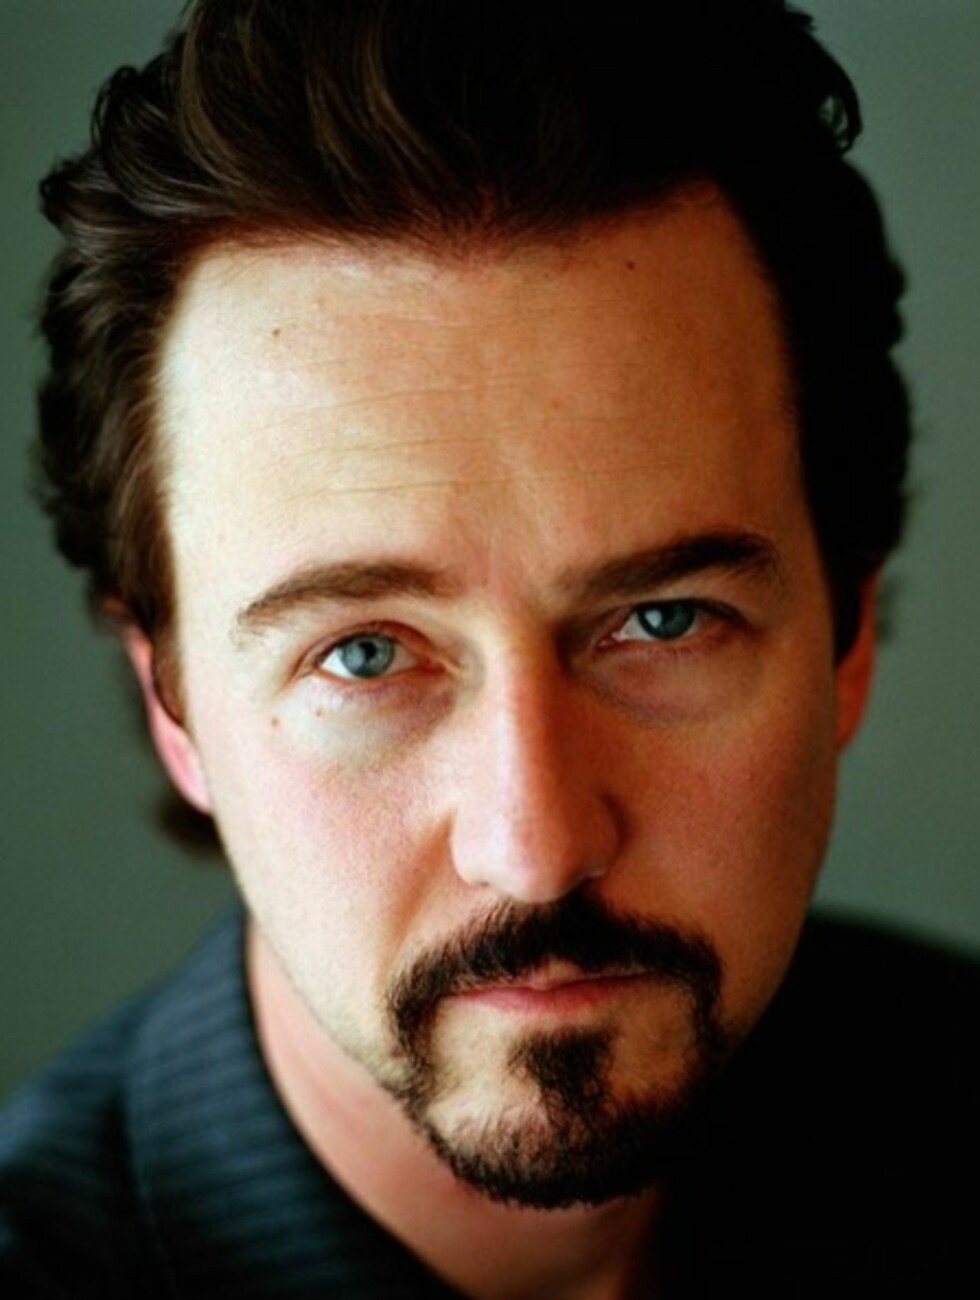 Edward Norton hjalp i 2005 BP (tidligere British Petroleum) med å lansere sitt Solar Neighbors Program. Programmet gir solcellepaneler til lavinntektshusholdninger I Los Angeles. Han har også vært programleder for en premiert dokumentarserie om globale miljøproblemer på National Geographic Channel. Foto: All Over Press